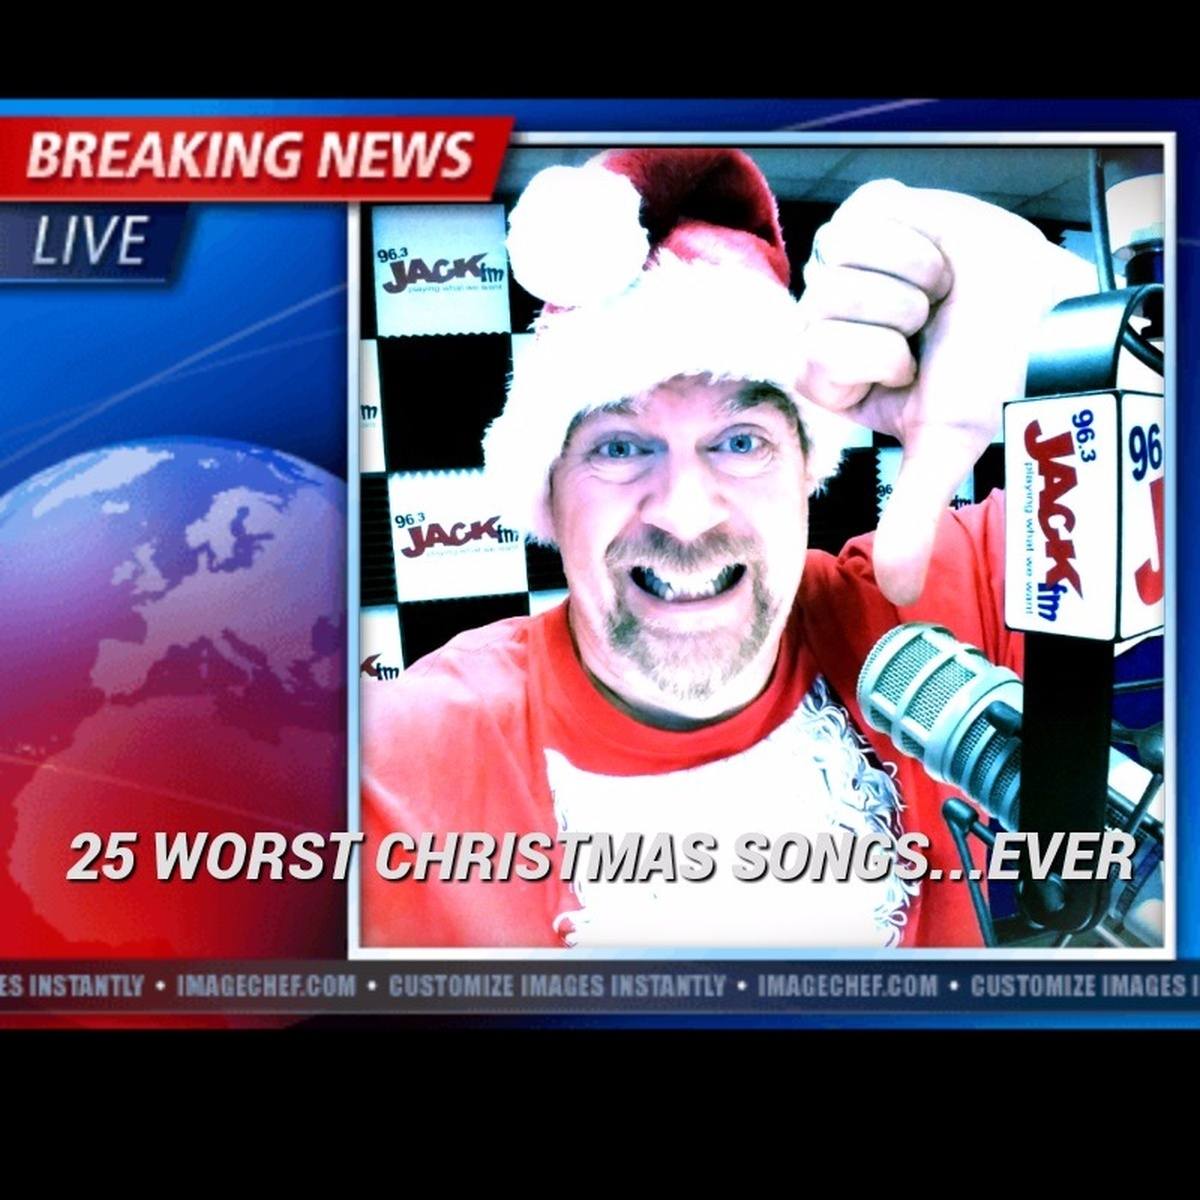 25 worst christmas songsever 963 jack fm - Dominick The Donkey Christmas Song